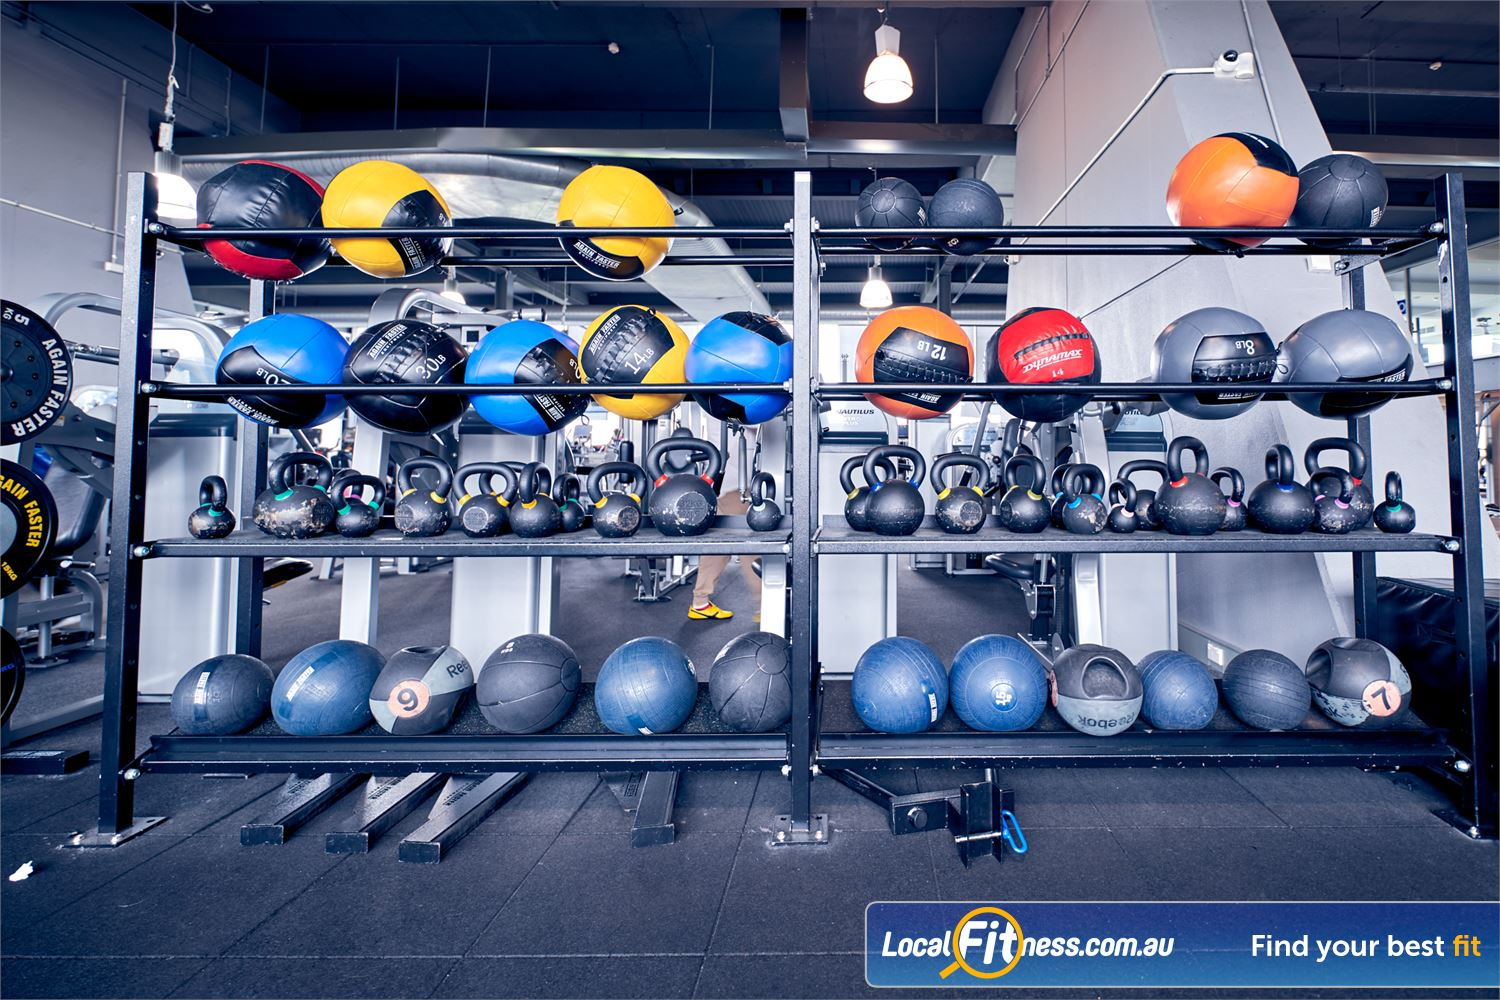 Goodlife Health Clubs Waverley Park Near Springvale Our functional area is fully equipped with kettlebells, dead balls, wall balls and more.